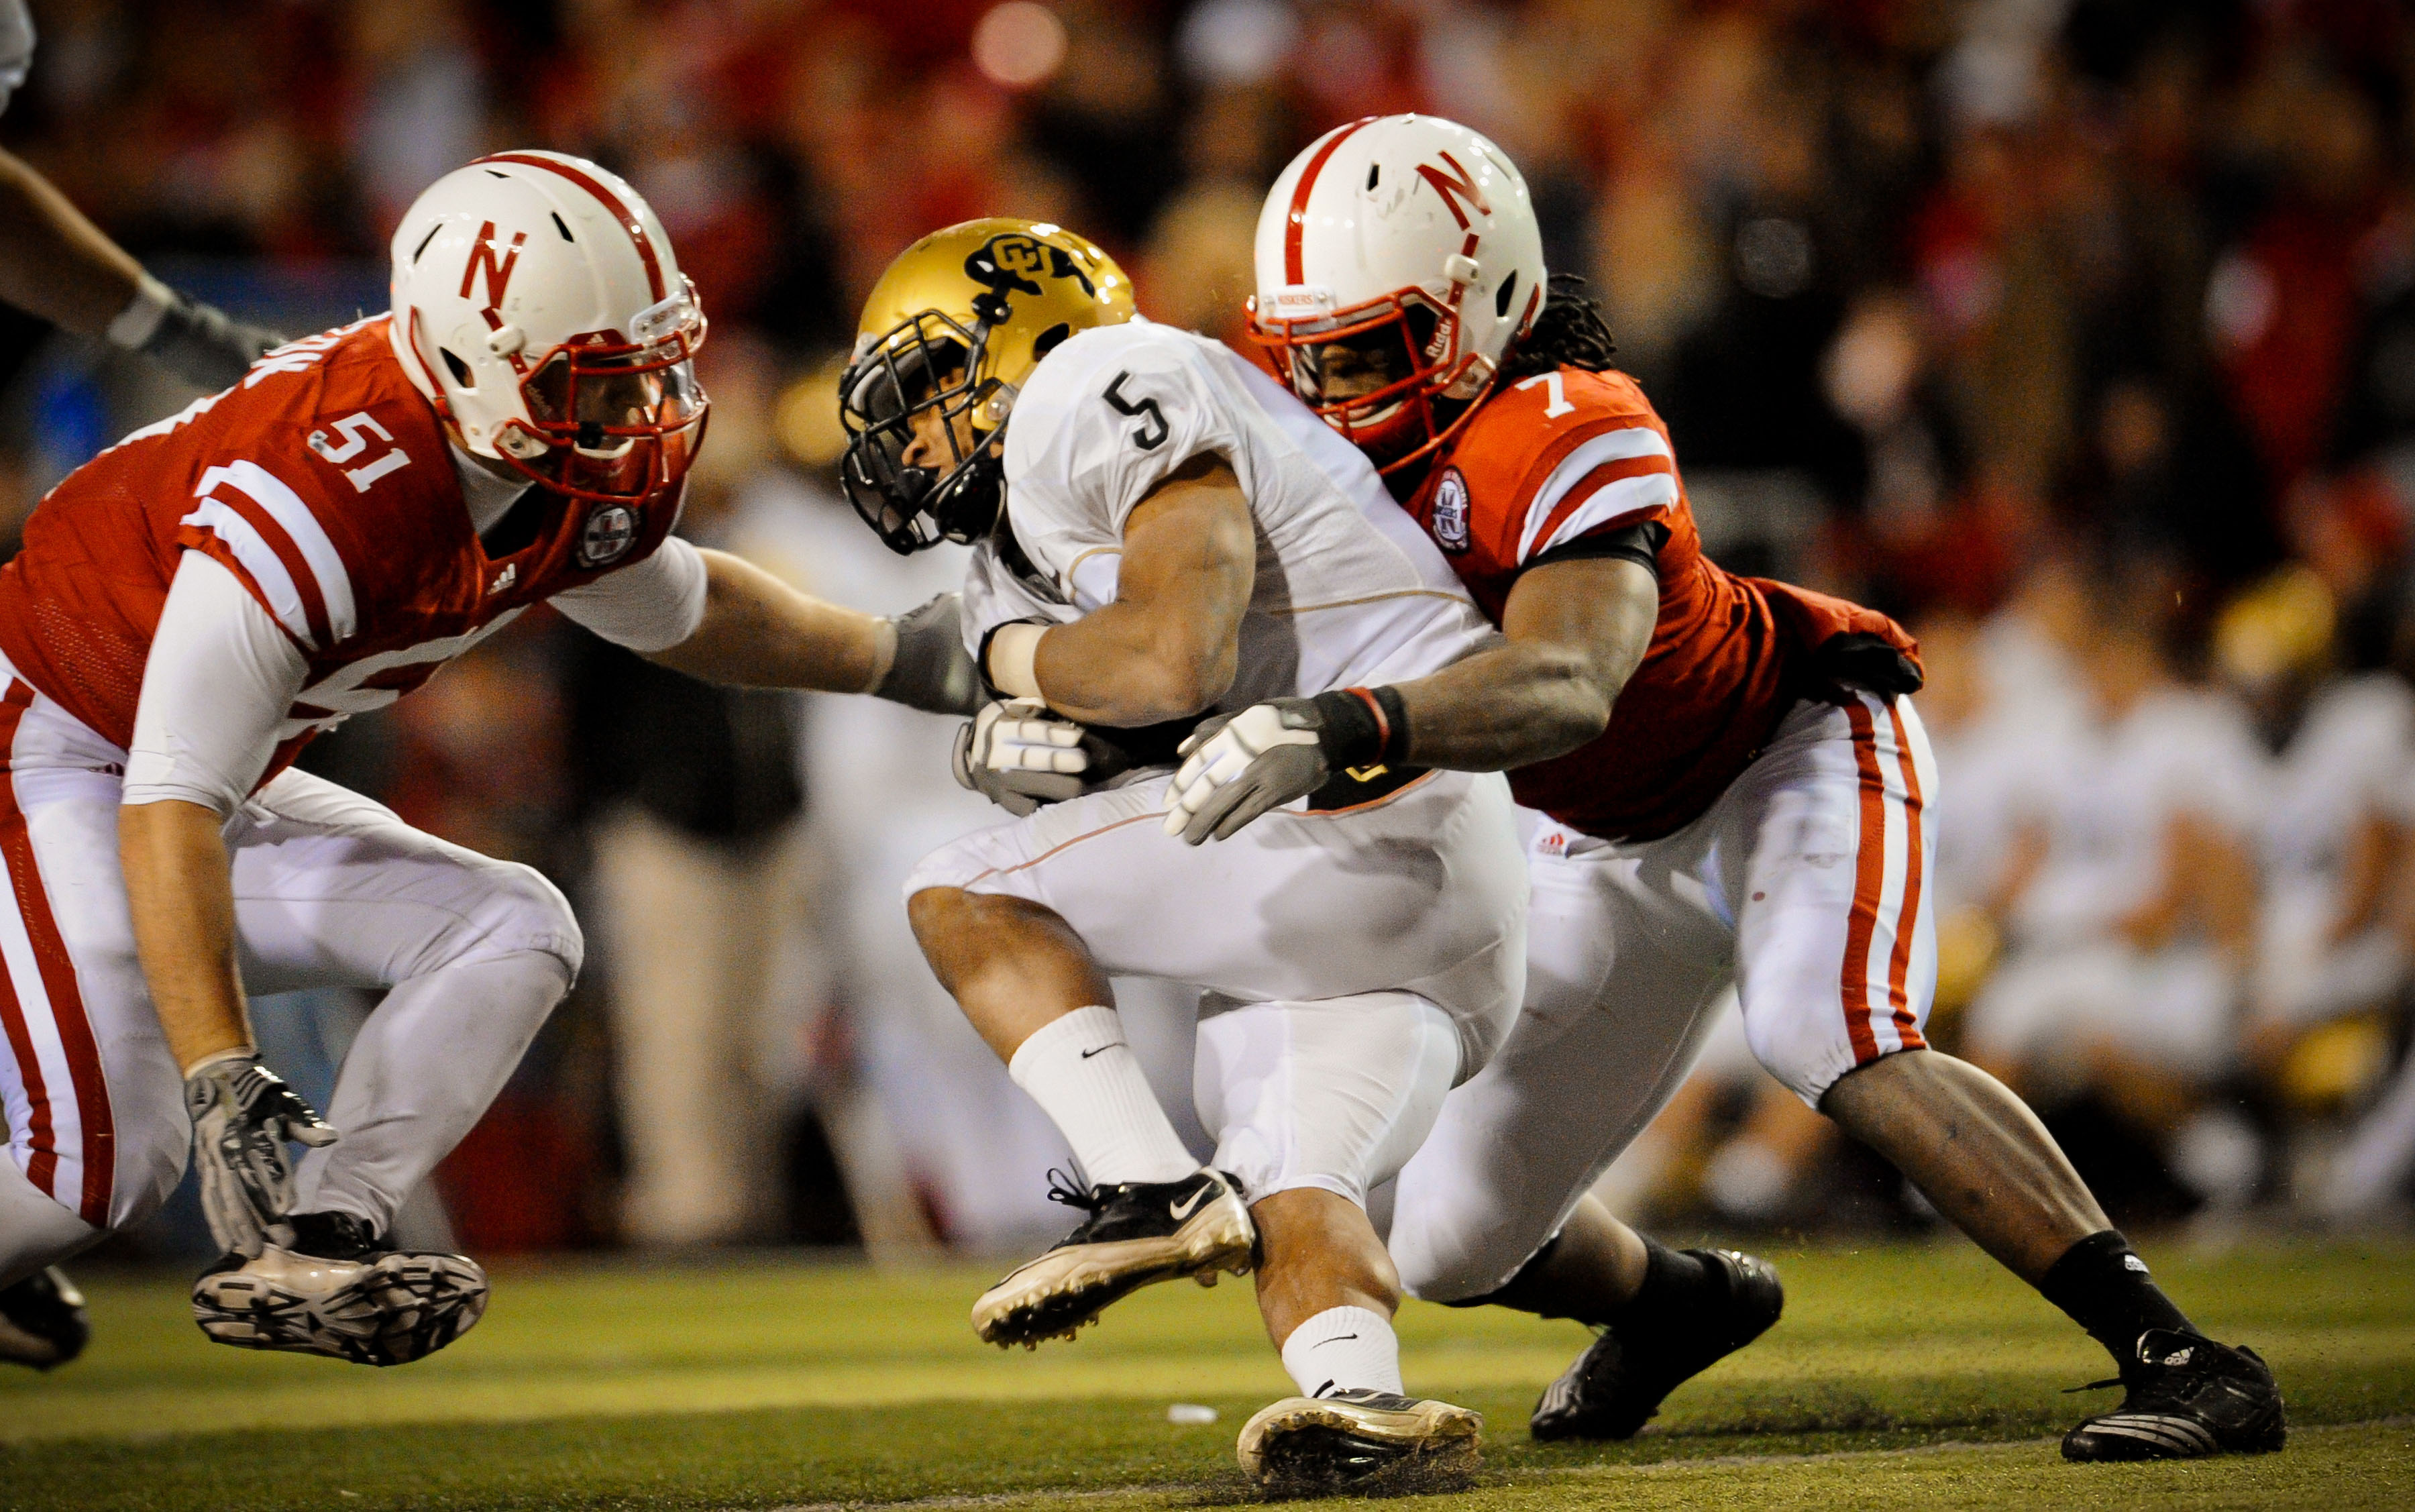 LINCOLN, NE - NOVEMBER 26: DeJon Gomes #7 and Will Compton #51 of the Nebraska Cornhuskers crunch Rodney Stewart #5 of the Colorado Buffaloes during the second half of their game at Memorial Stadium on November 26, 2010 in Lincoln, Nebraska. Nebraska defe